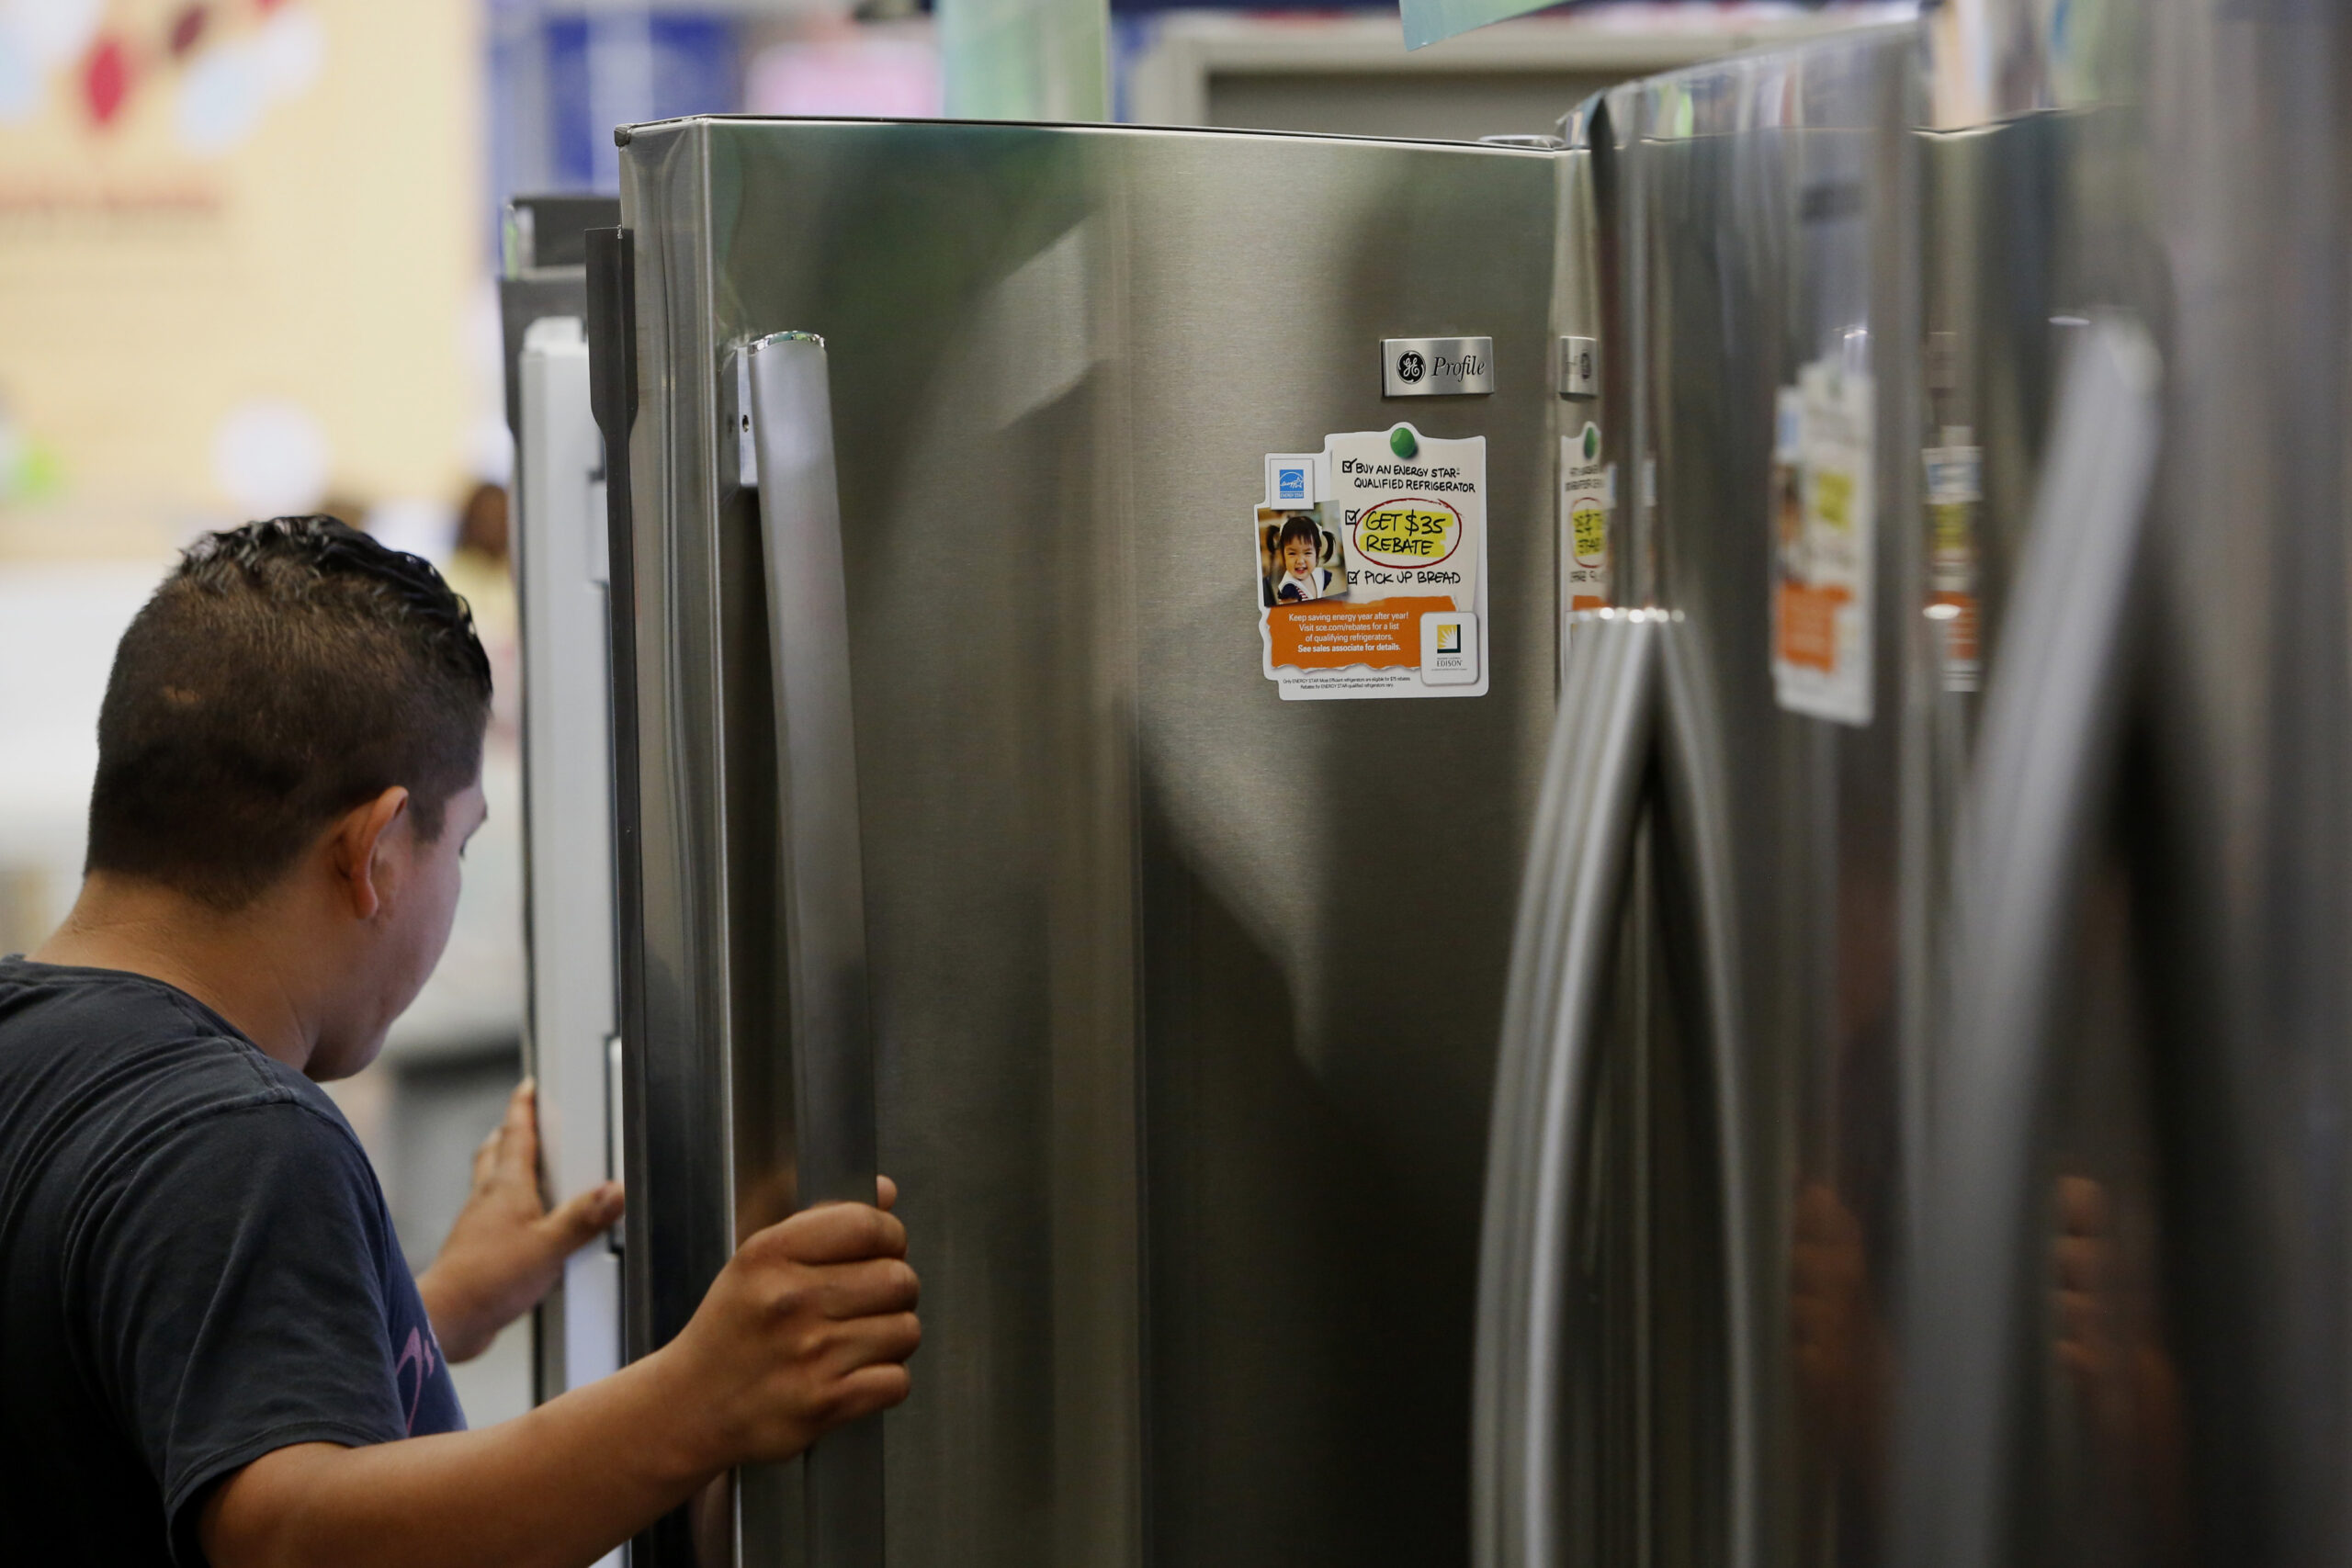 A man views a General Electric refrigerator displayed for sale at a Lowe's Cos. store in Torrance, California. Credit: Patrick T. Fallon/Bloomberg via Getty Images